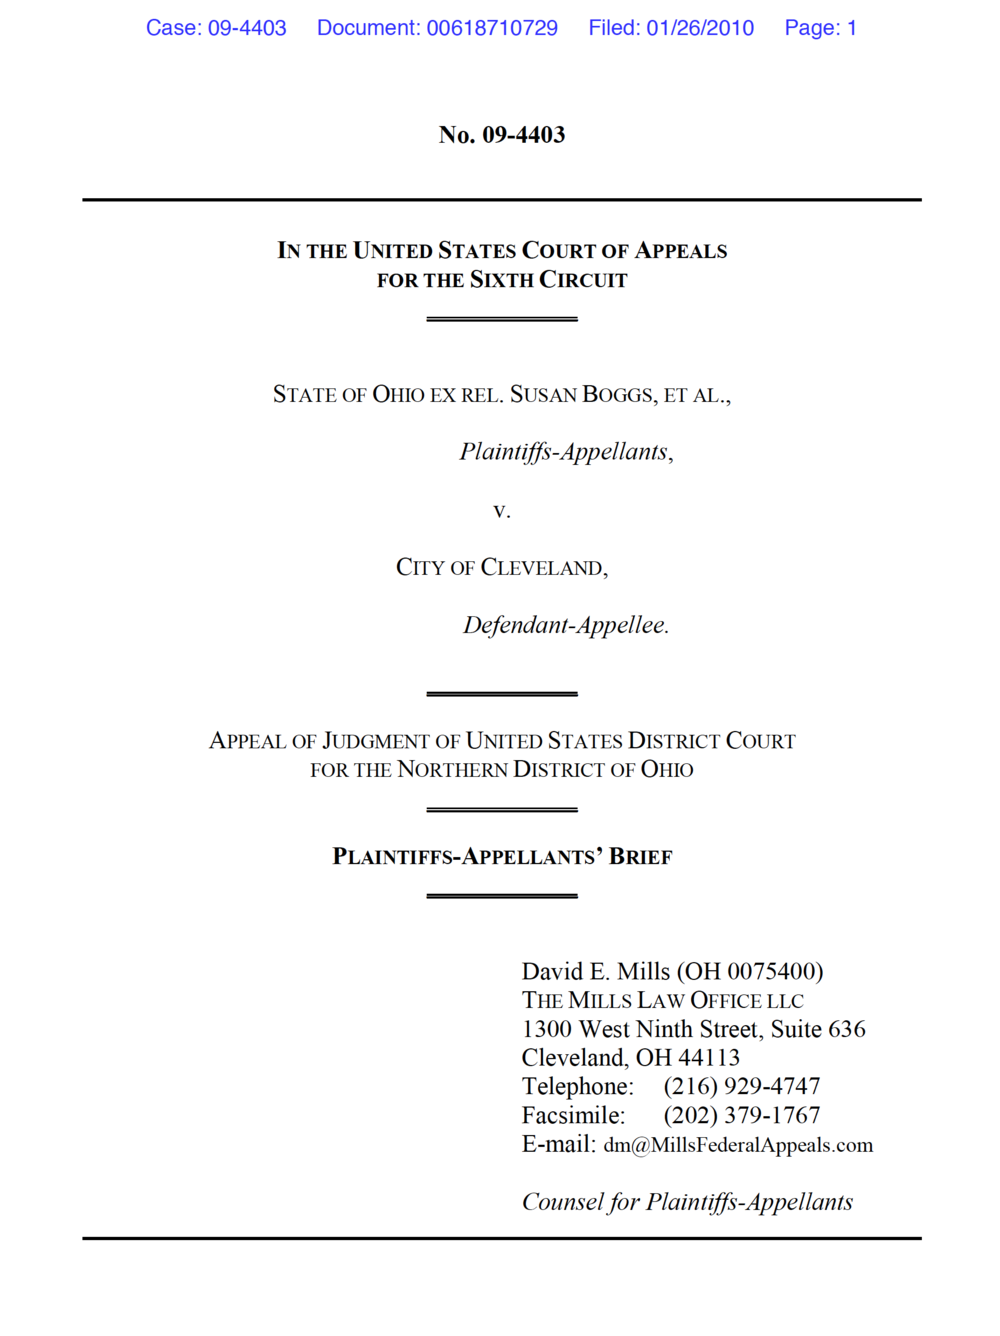 By Supreme Court In Waistband Frazier Built Ambulance Wiring Diagram The City Contends That Plaintiffs Current Suit Is Barred Through Res Judicata State Judgment Dismissed Their 2002 Complaint